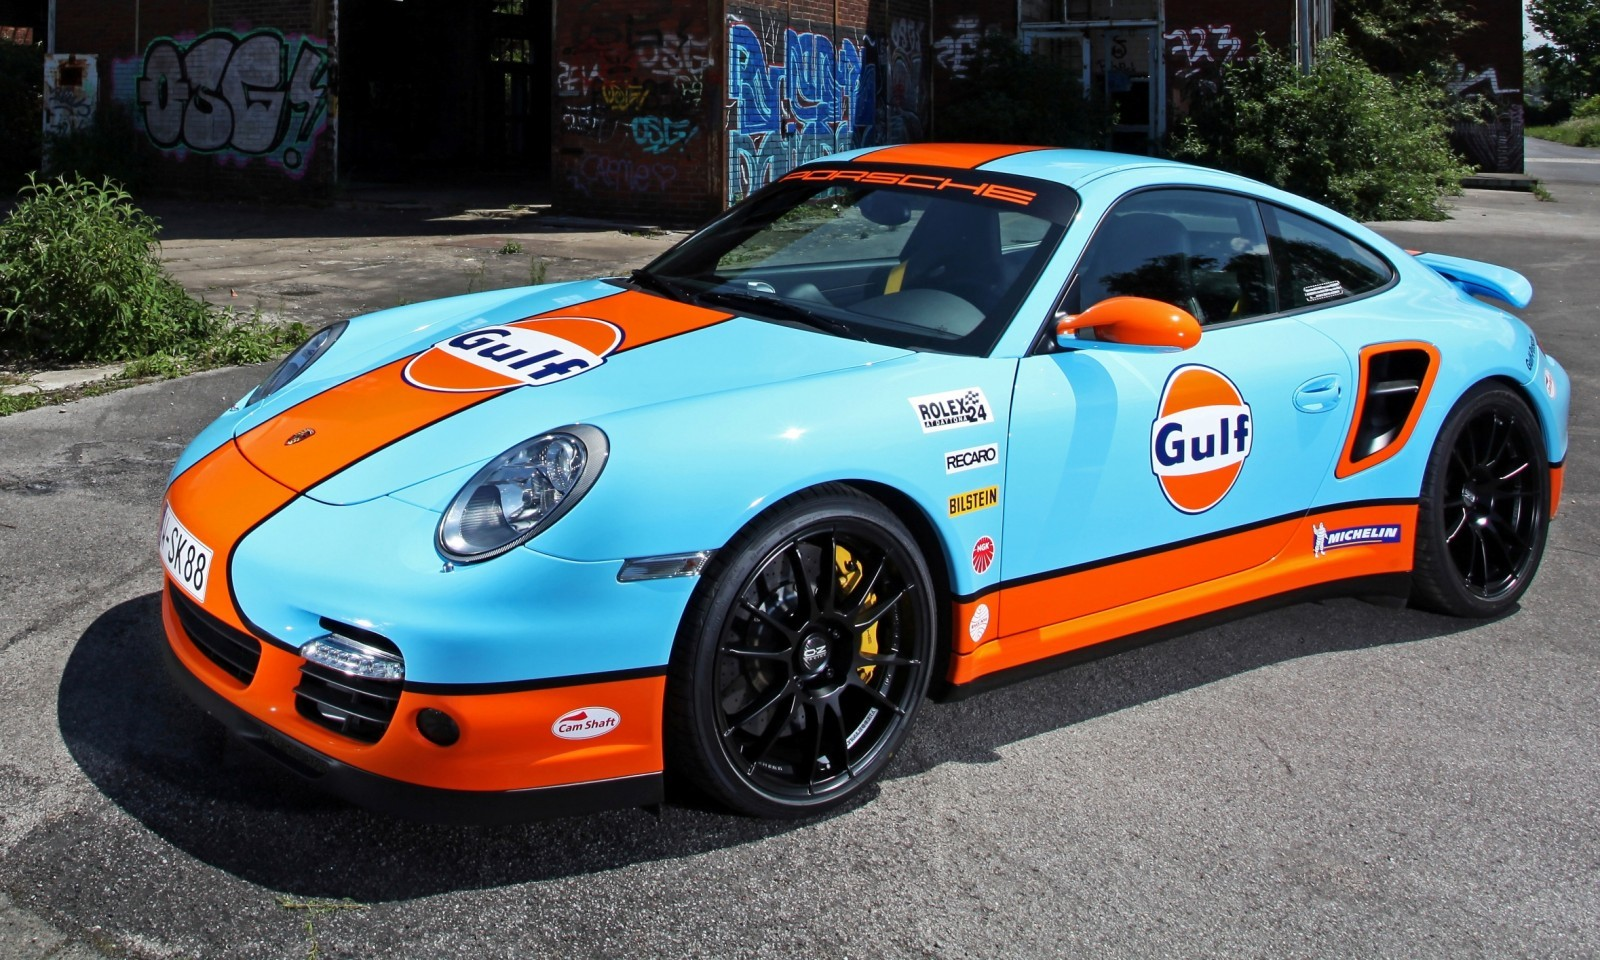 Gulf Racing Livery by CAM SHAFT for the Porsche 911 Turbo 19